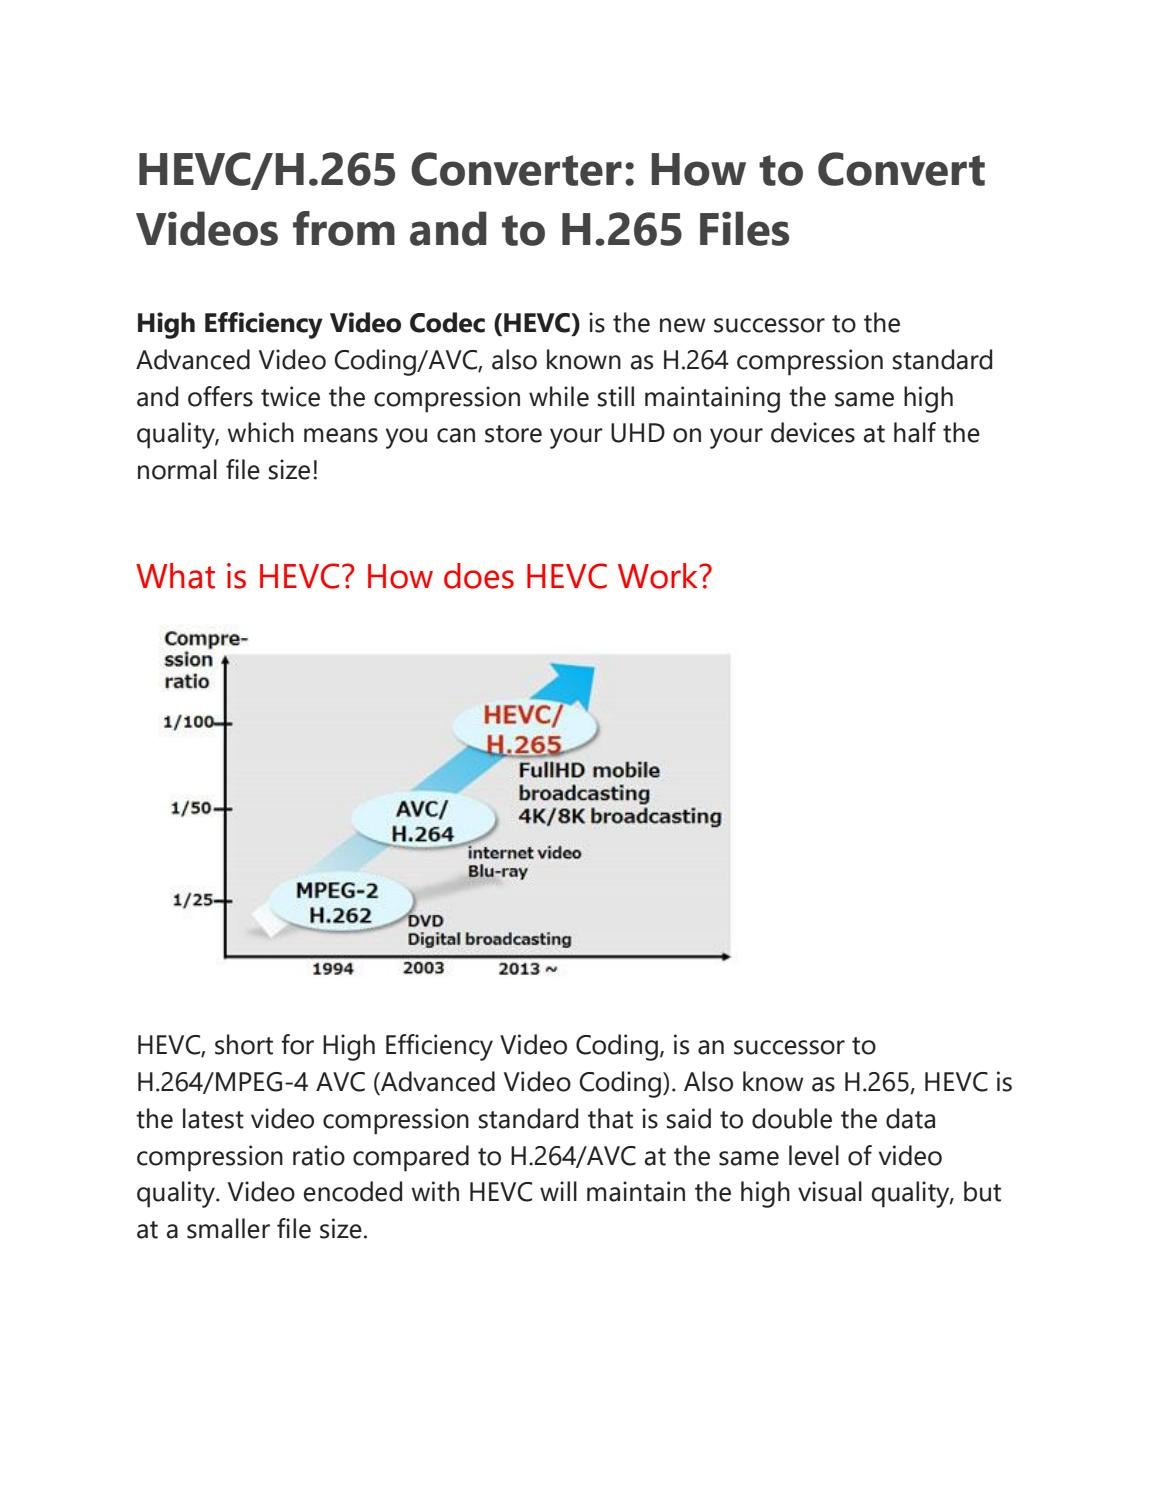 HEVC/H 265 Converter: How to Convert Videos from and to H